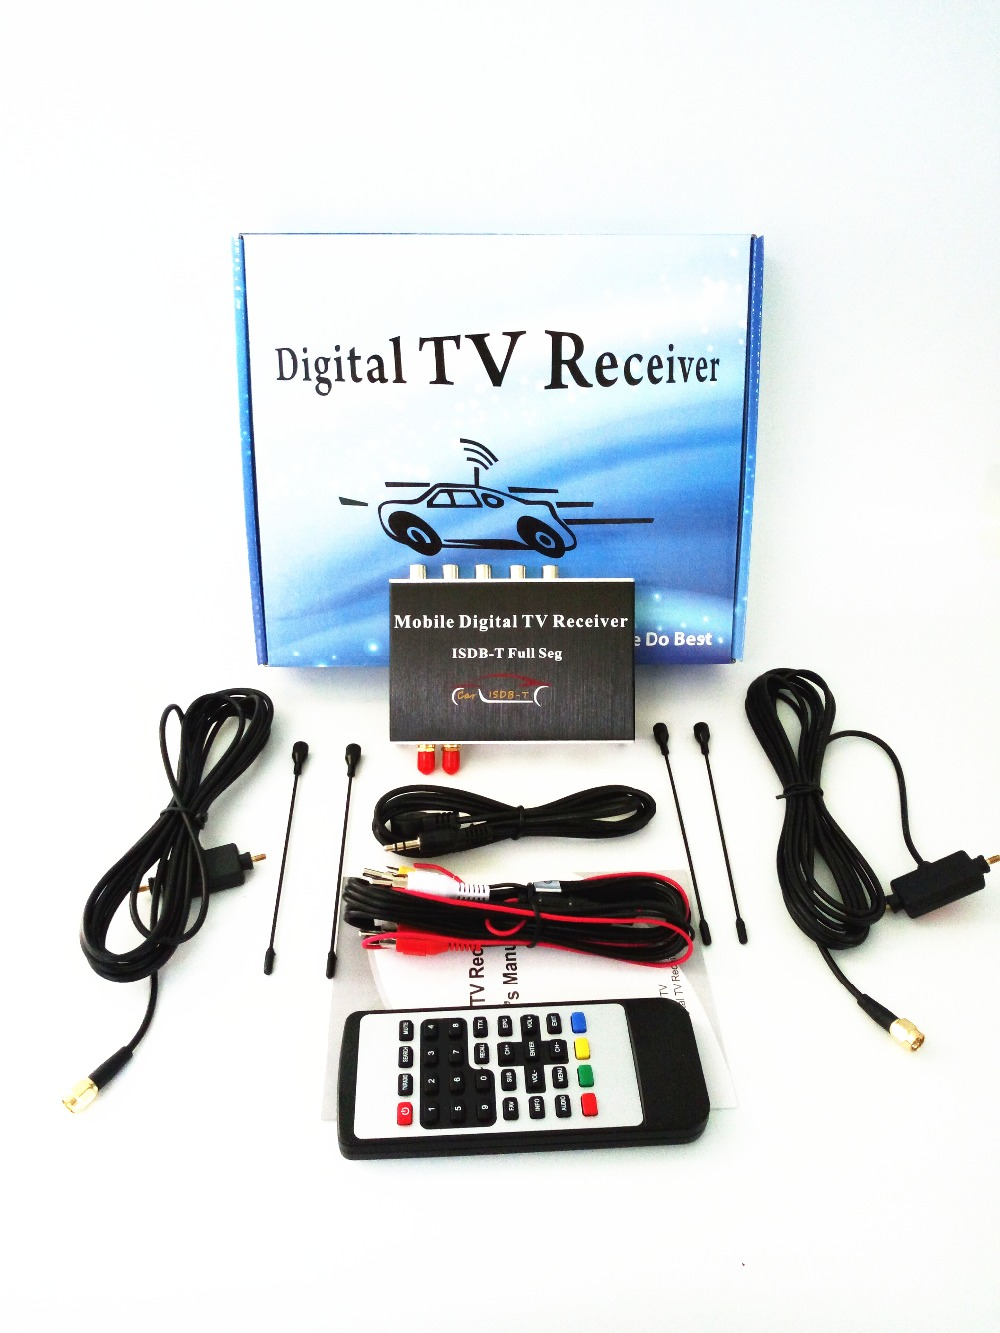 IN CAR DIGITAL TV TUNER Receiver ISDB-T Digital TV Receiver for Brazil,Peru,Argentina,Philippines m 389f car tv tuner isdb t full seg digital tv box receiver mini tv box work in philippines south america